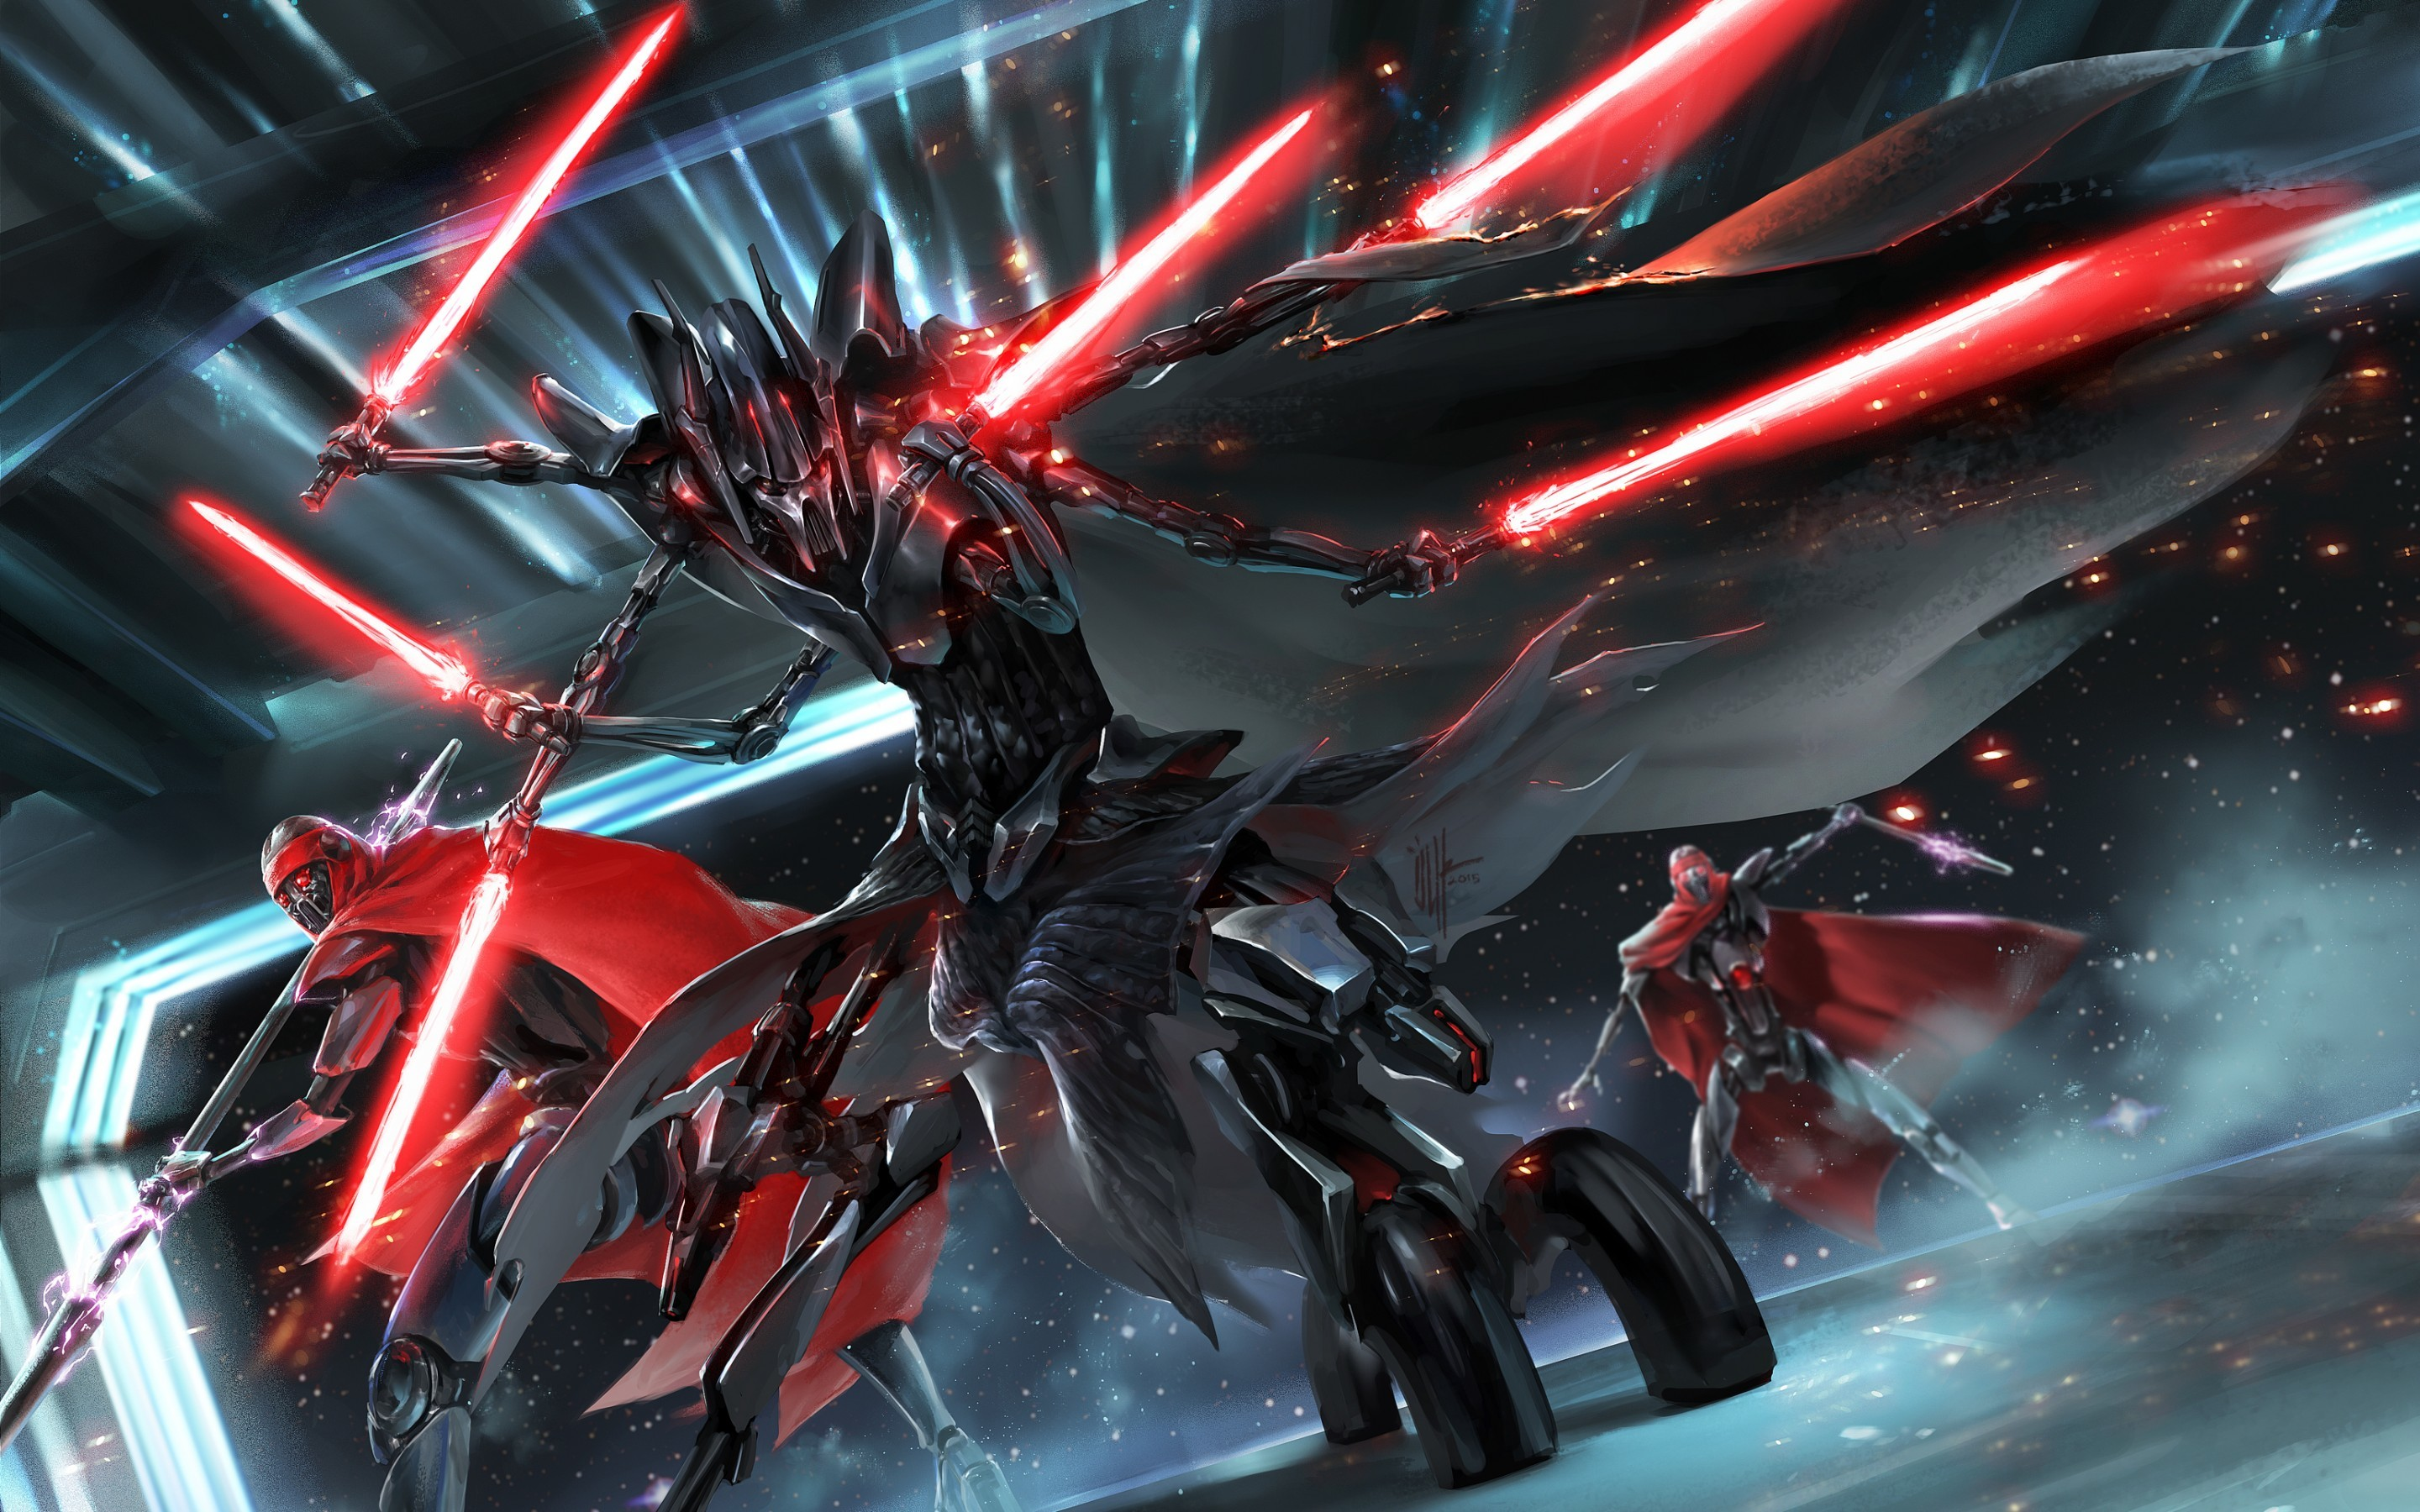 Tags: General Grievous, Star Wars …